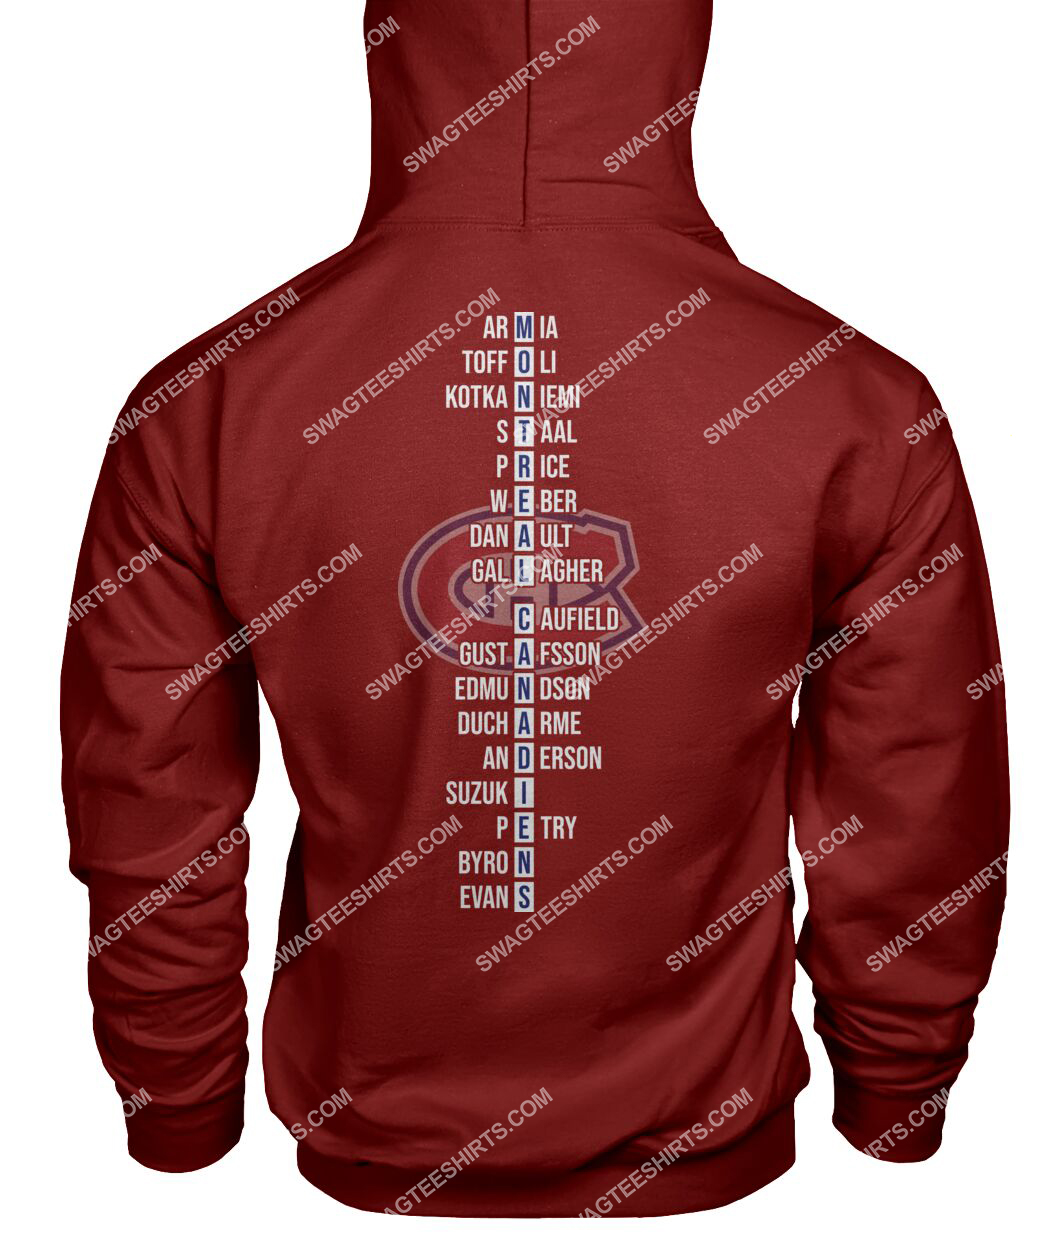 montreal canadiens 2021 north division champions hoodie - back 1